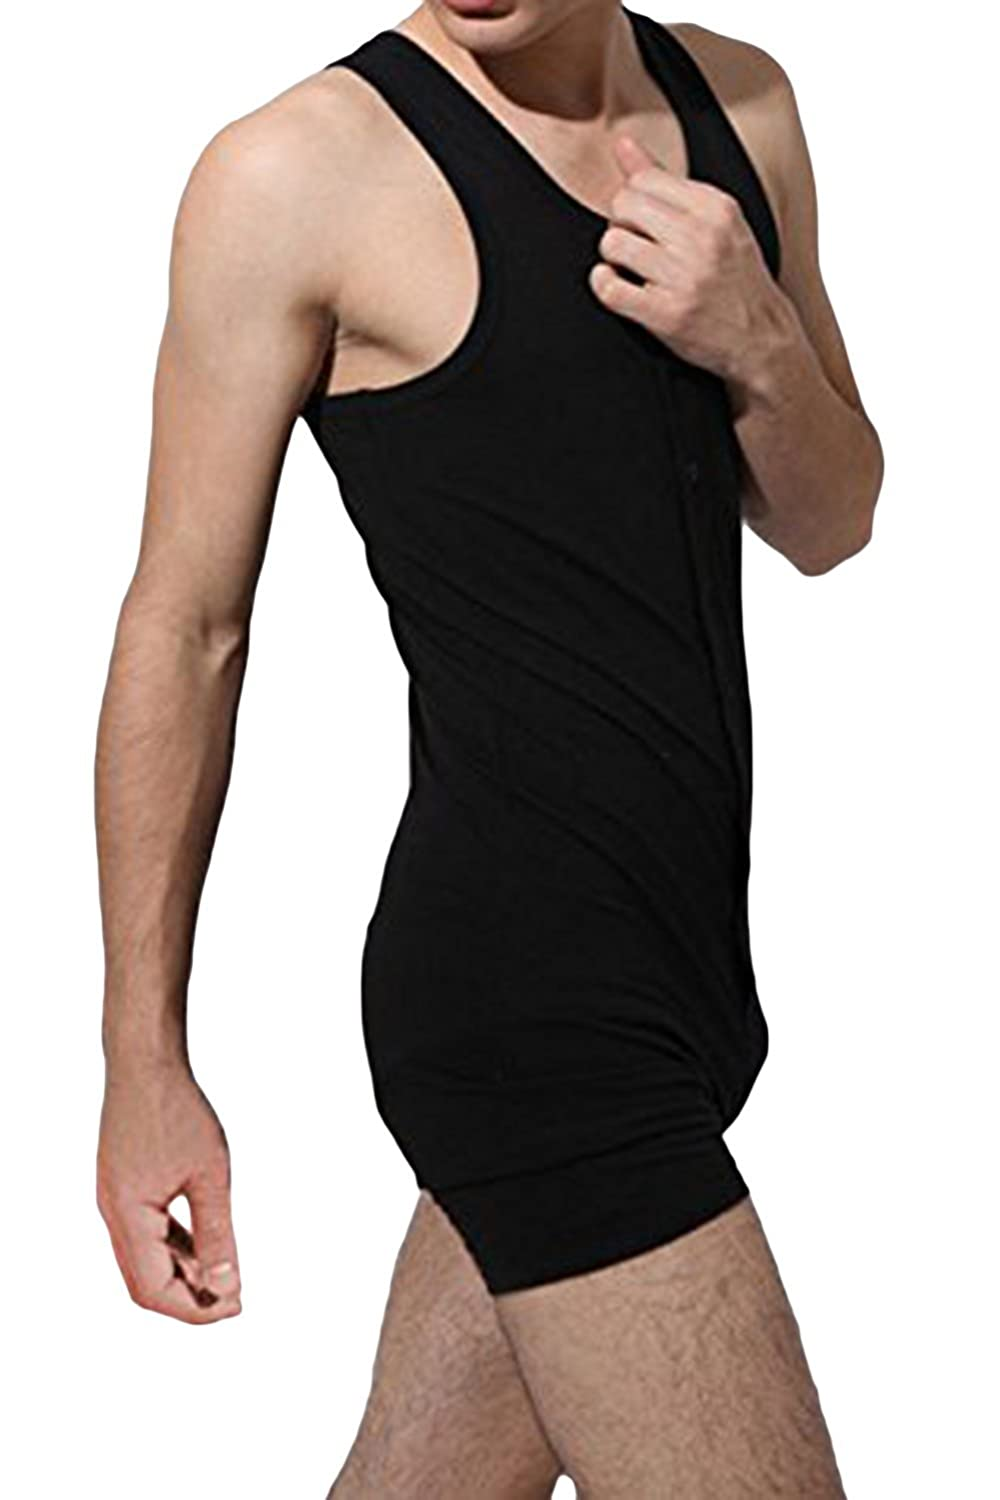 Mr. Selfridge Costumes Season 3: 1919 Clothing One Piece Button Bodywear Body Suit Underwear Tights Leotard $17.91 AT vintagedancer.com